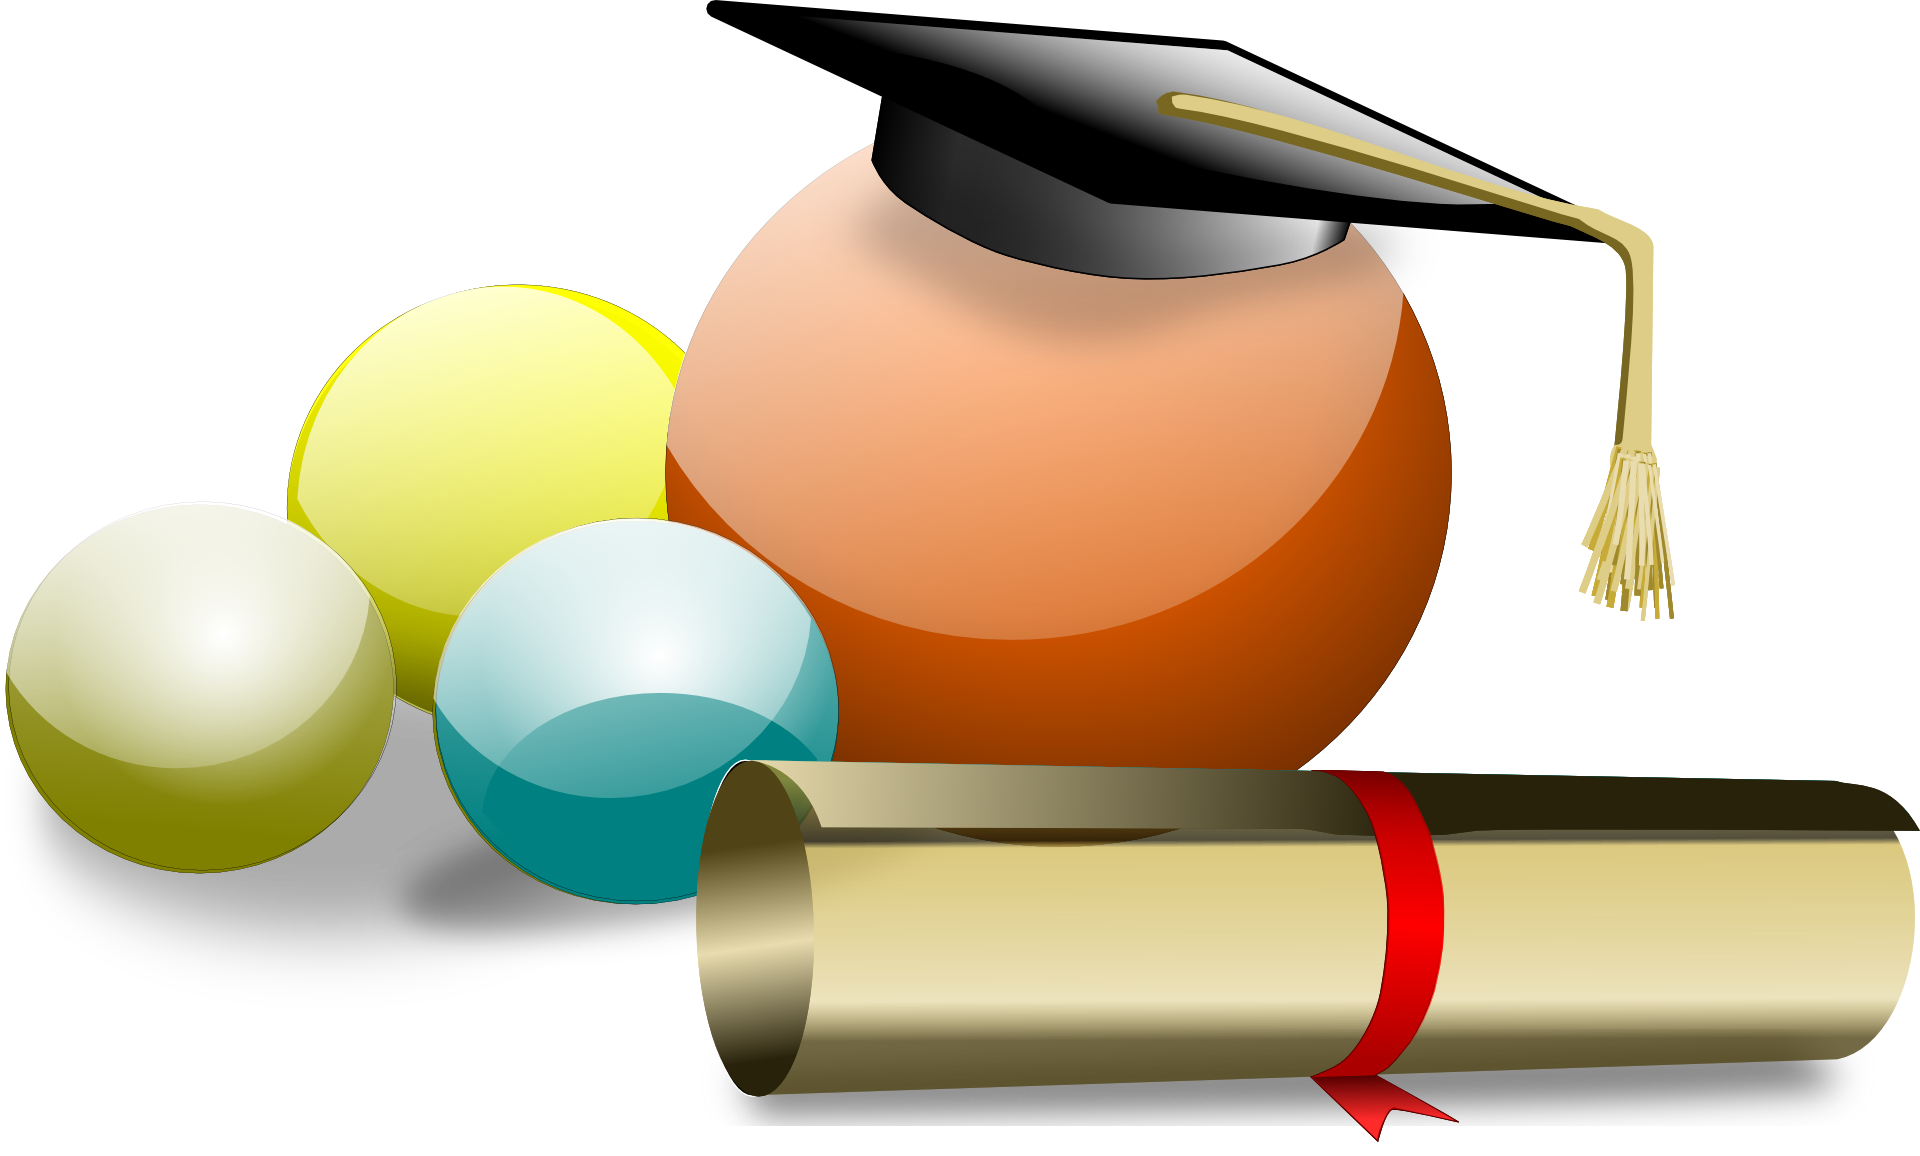 PhD Dissertation Defense: How To Be Prepared For It